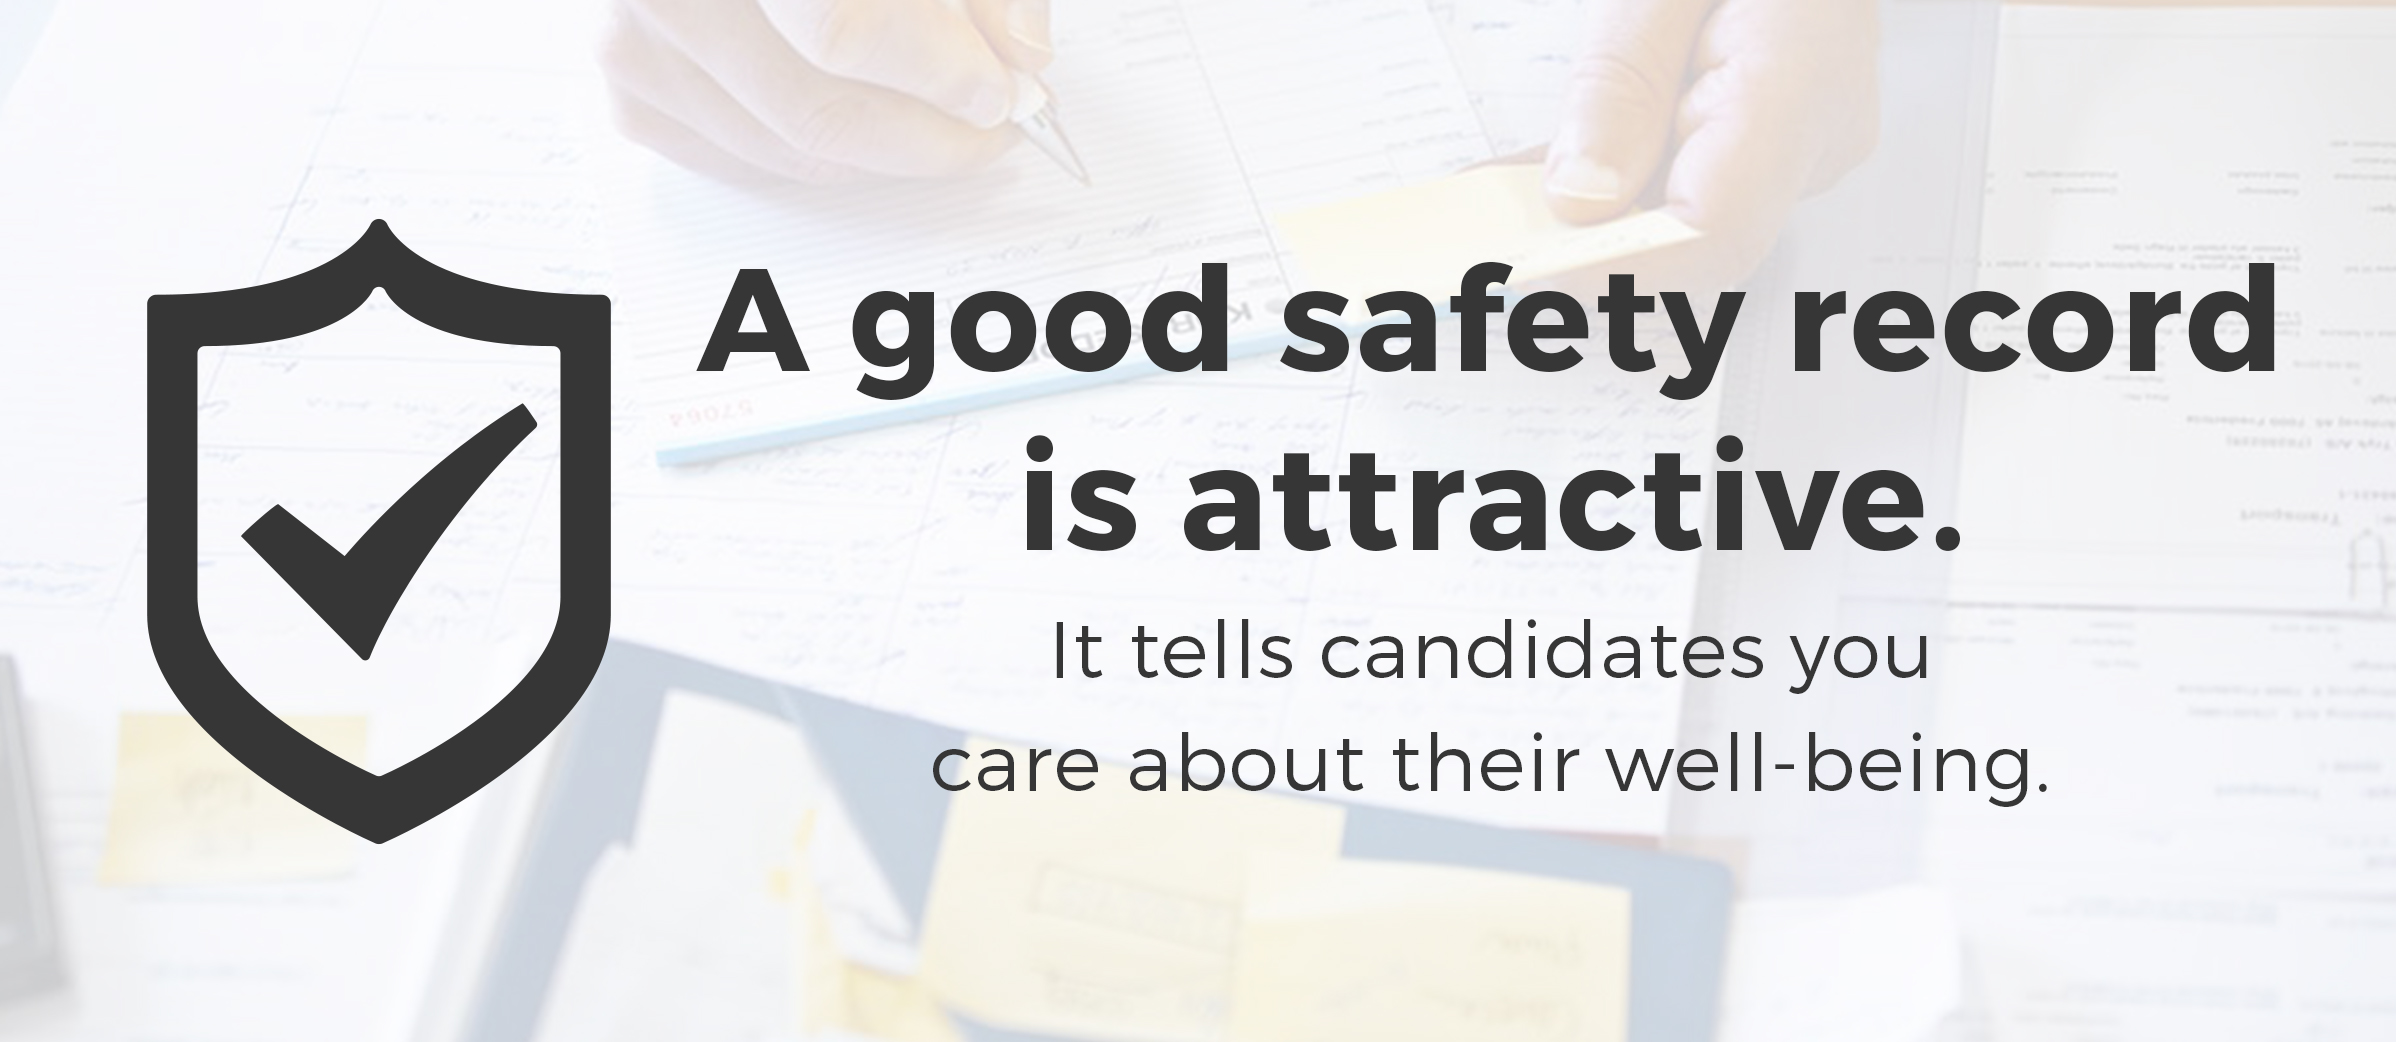 a good safety record is attactive